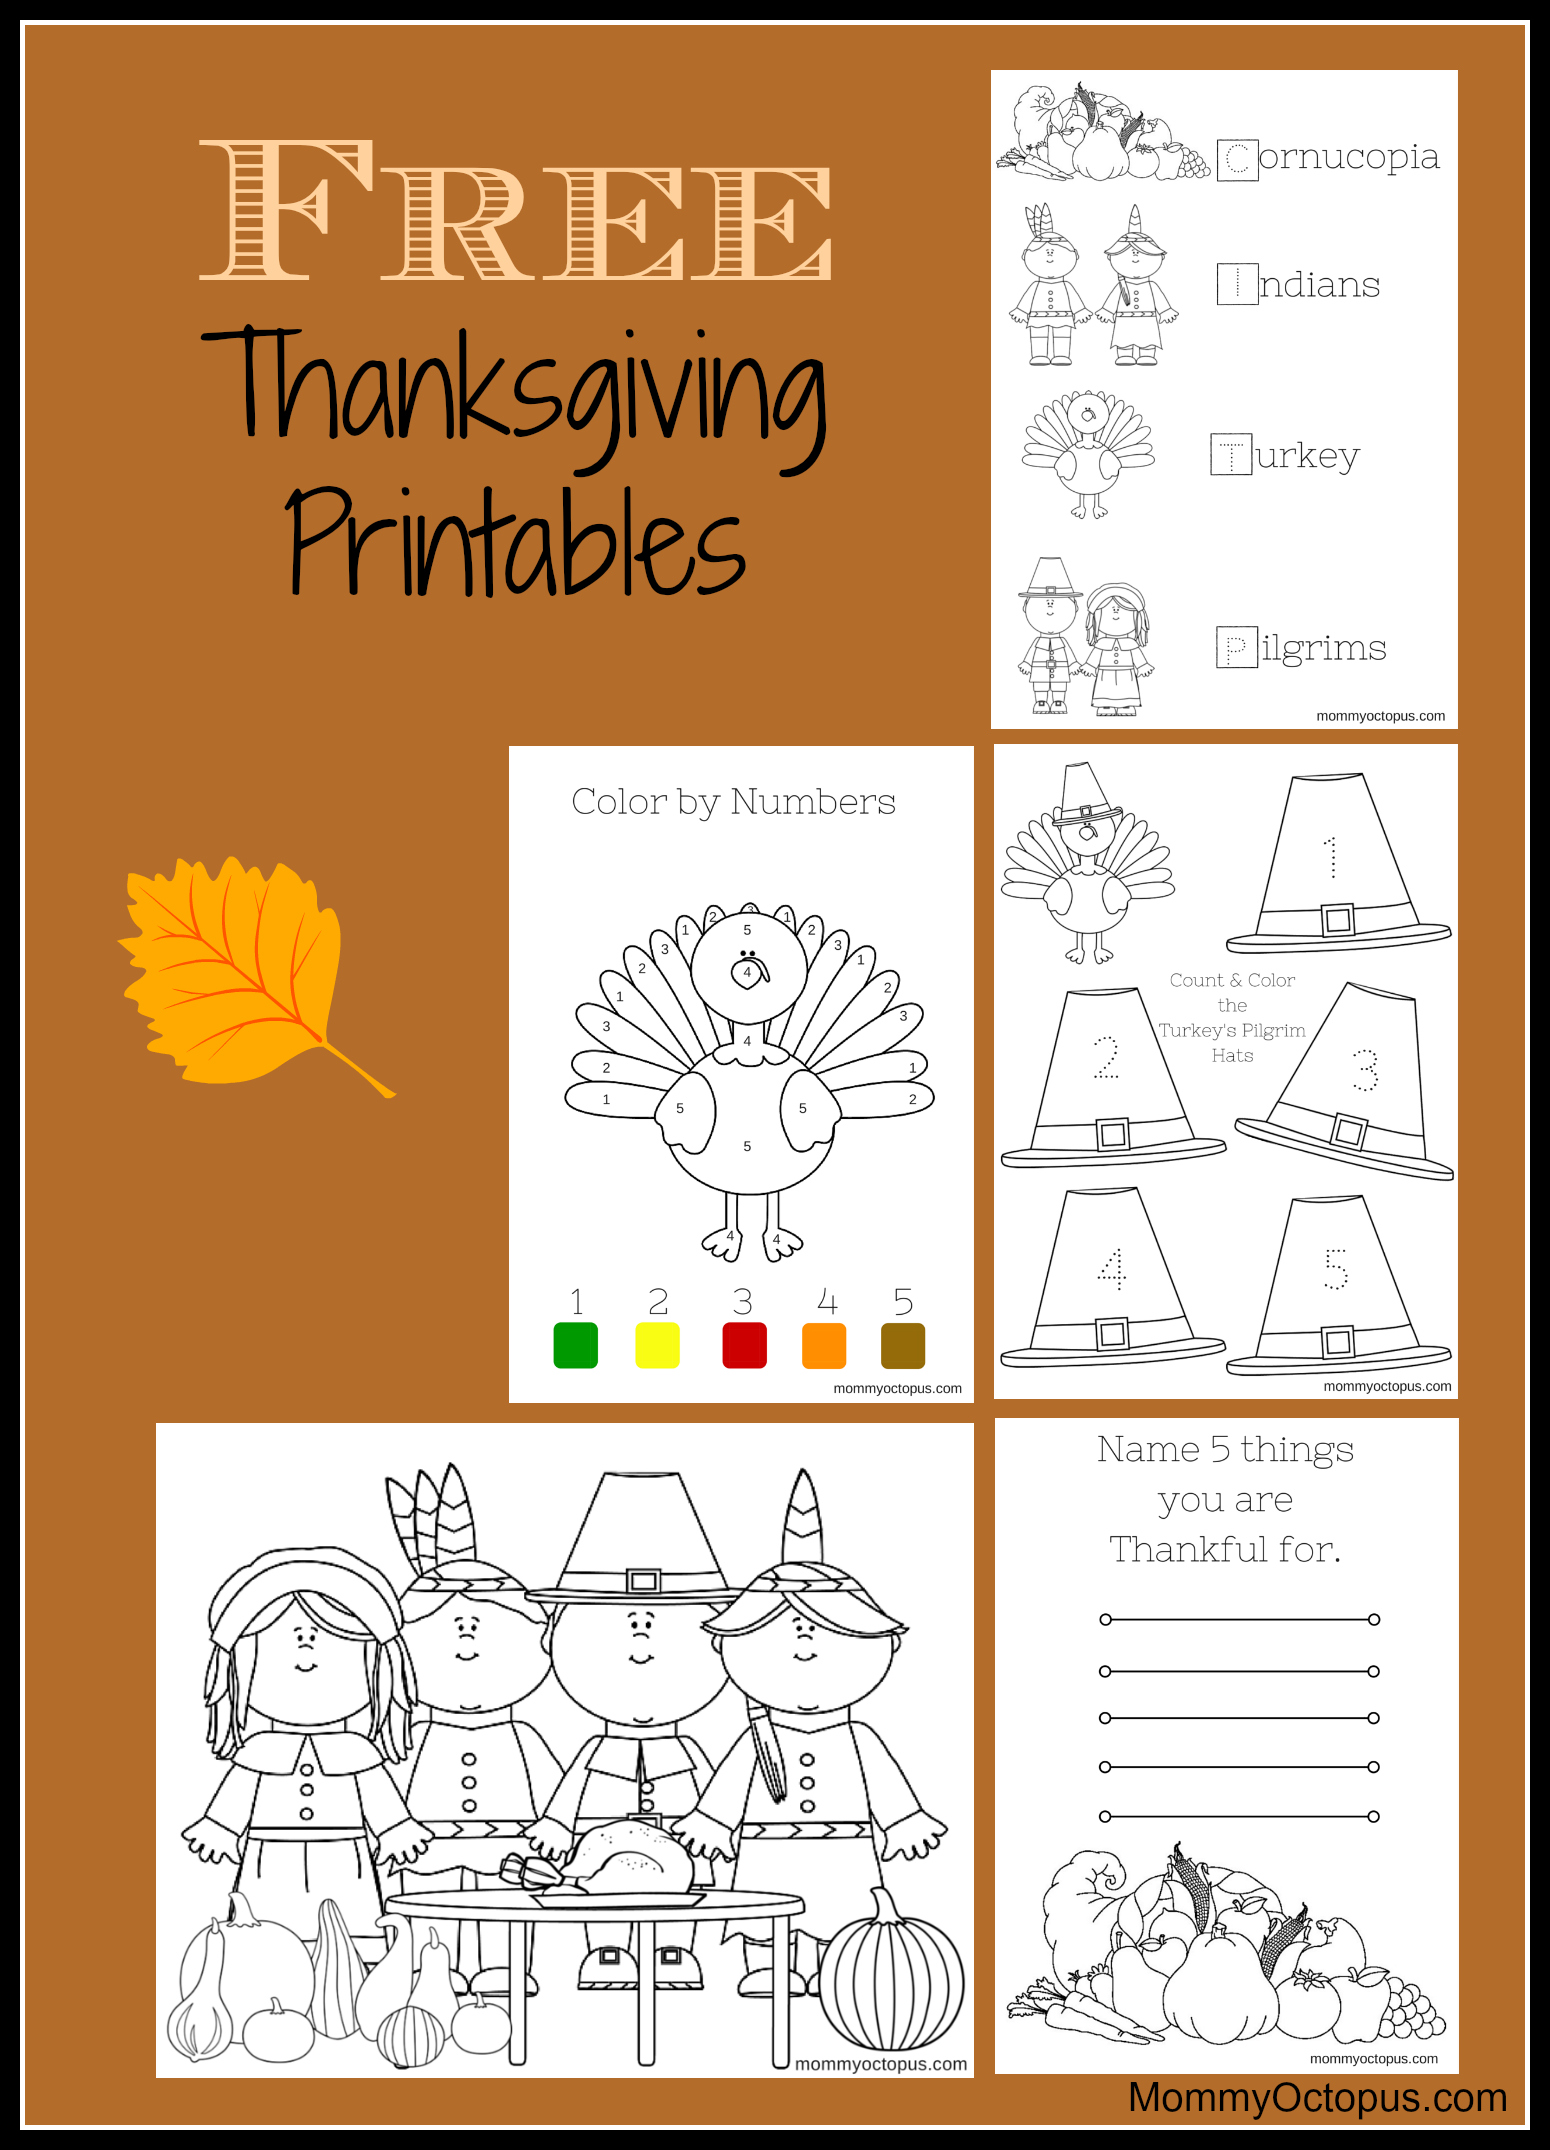 Free Thanksgiving Printable Activity Sheets